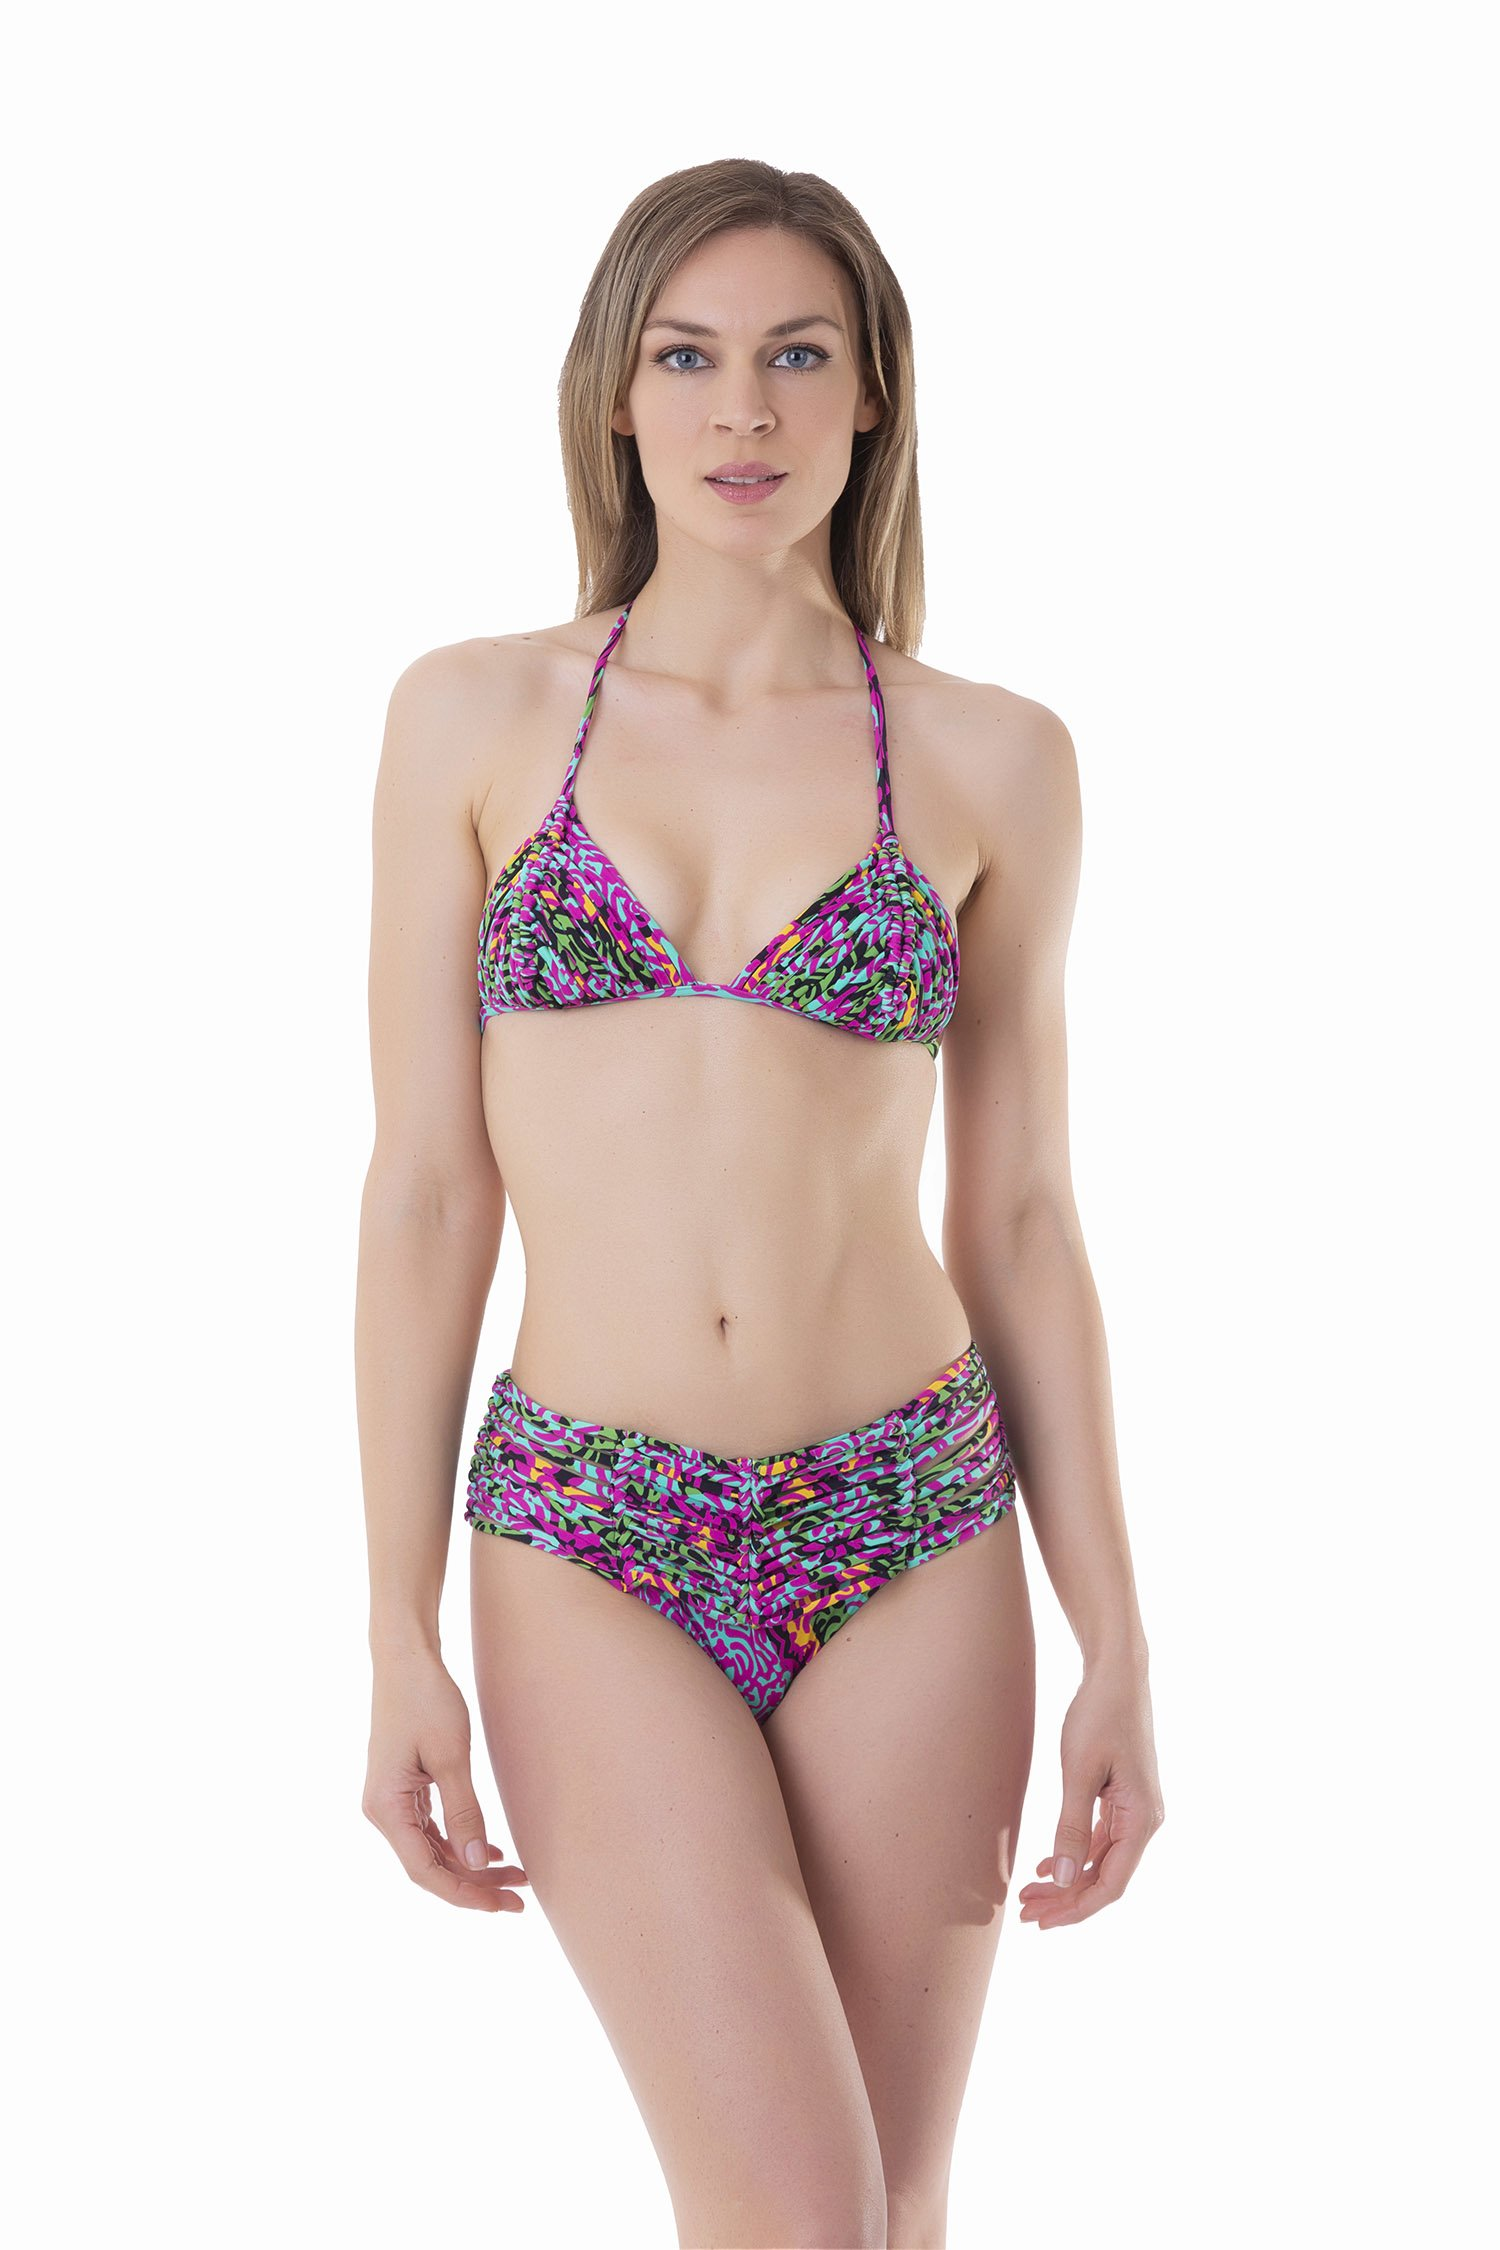 LUXE PRINTED TRIANGLE BIKINI WITH MACRAME' AND BOTTOM WITH MACRAME' BELT - India Pop Fuxia